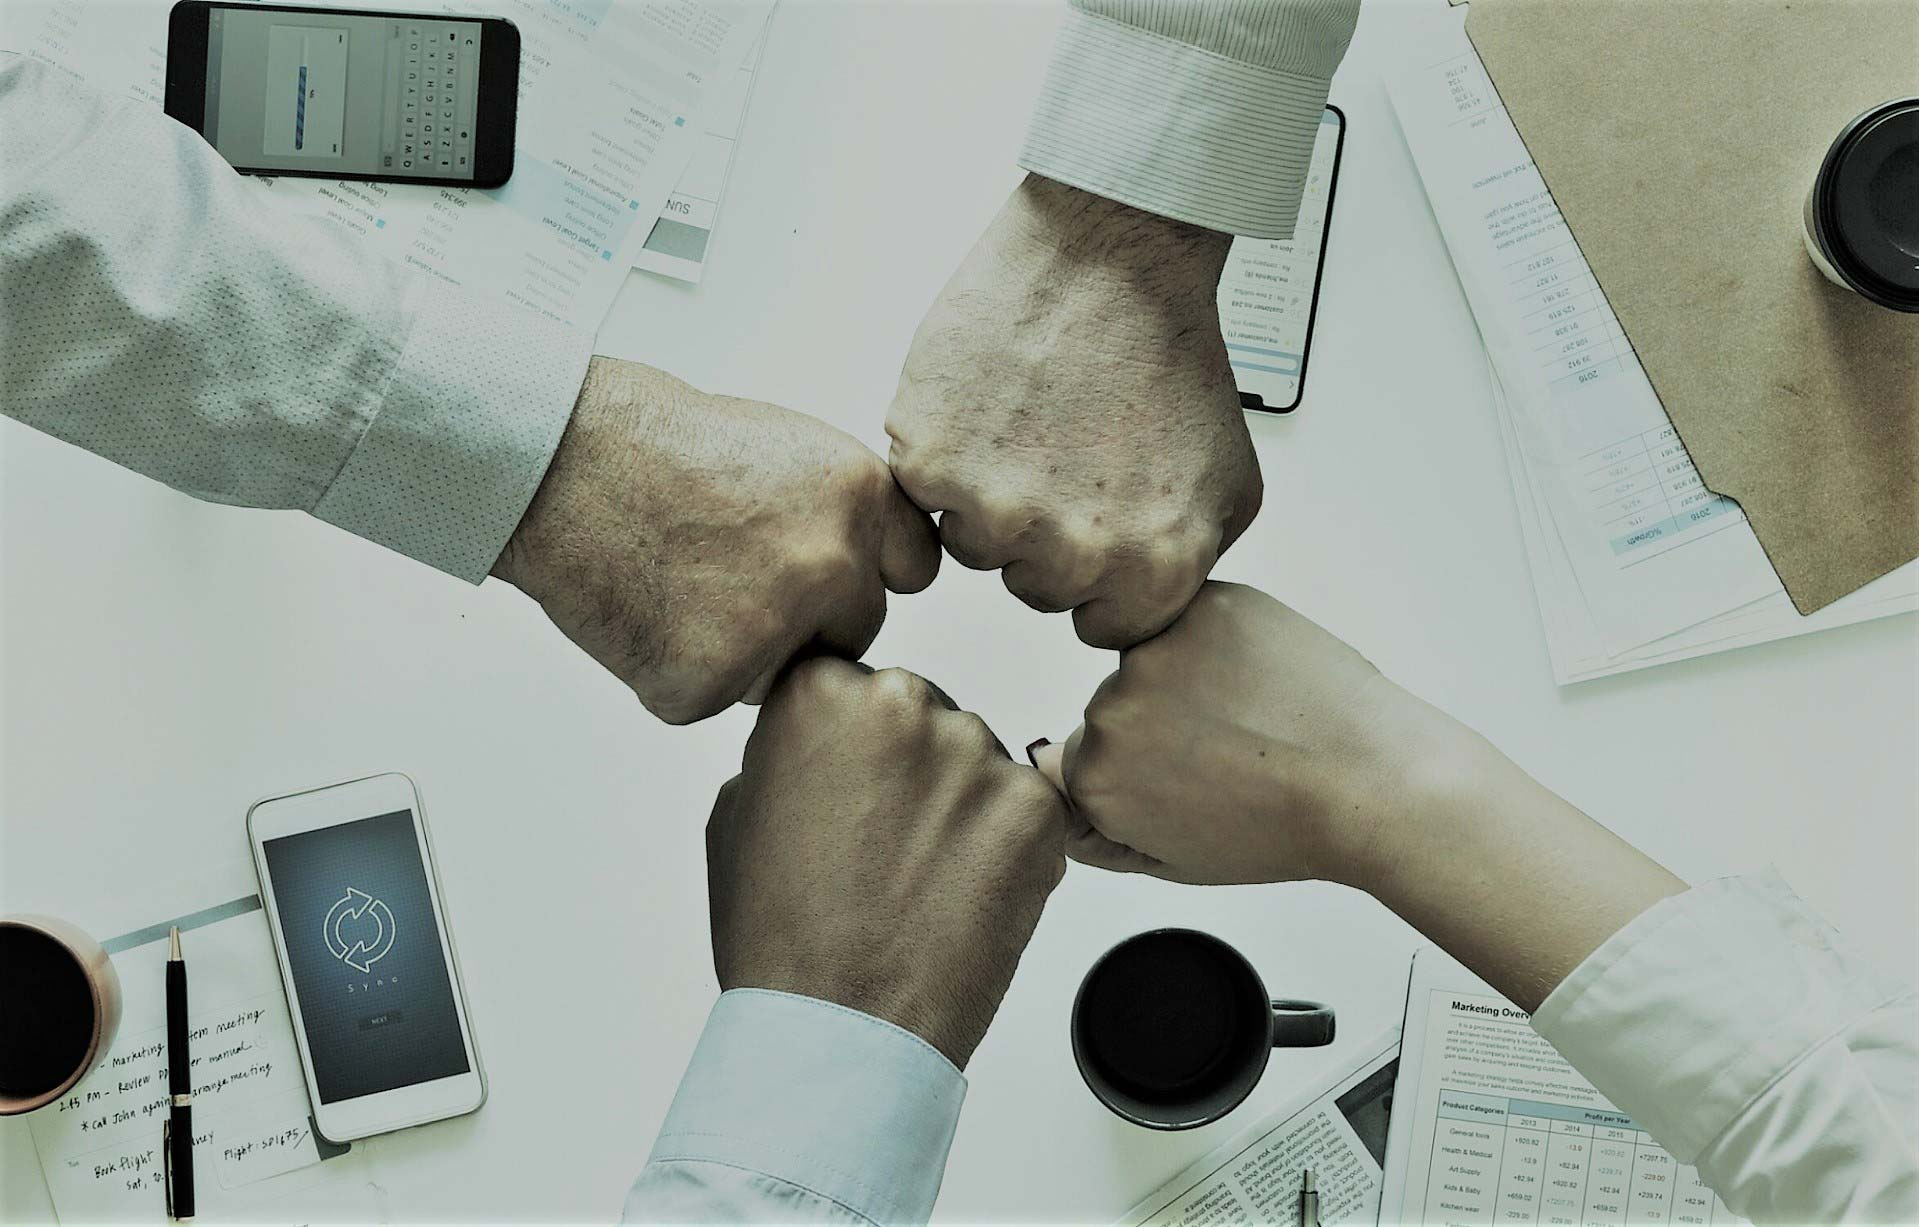 Four fists of team members meeting in the middle, representing collaboration in a translation business